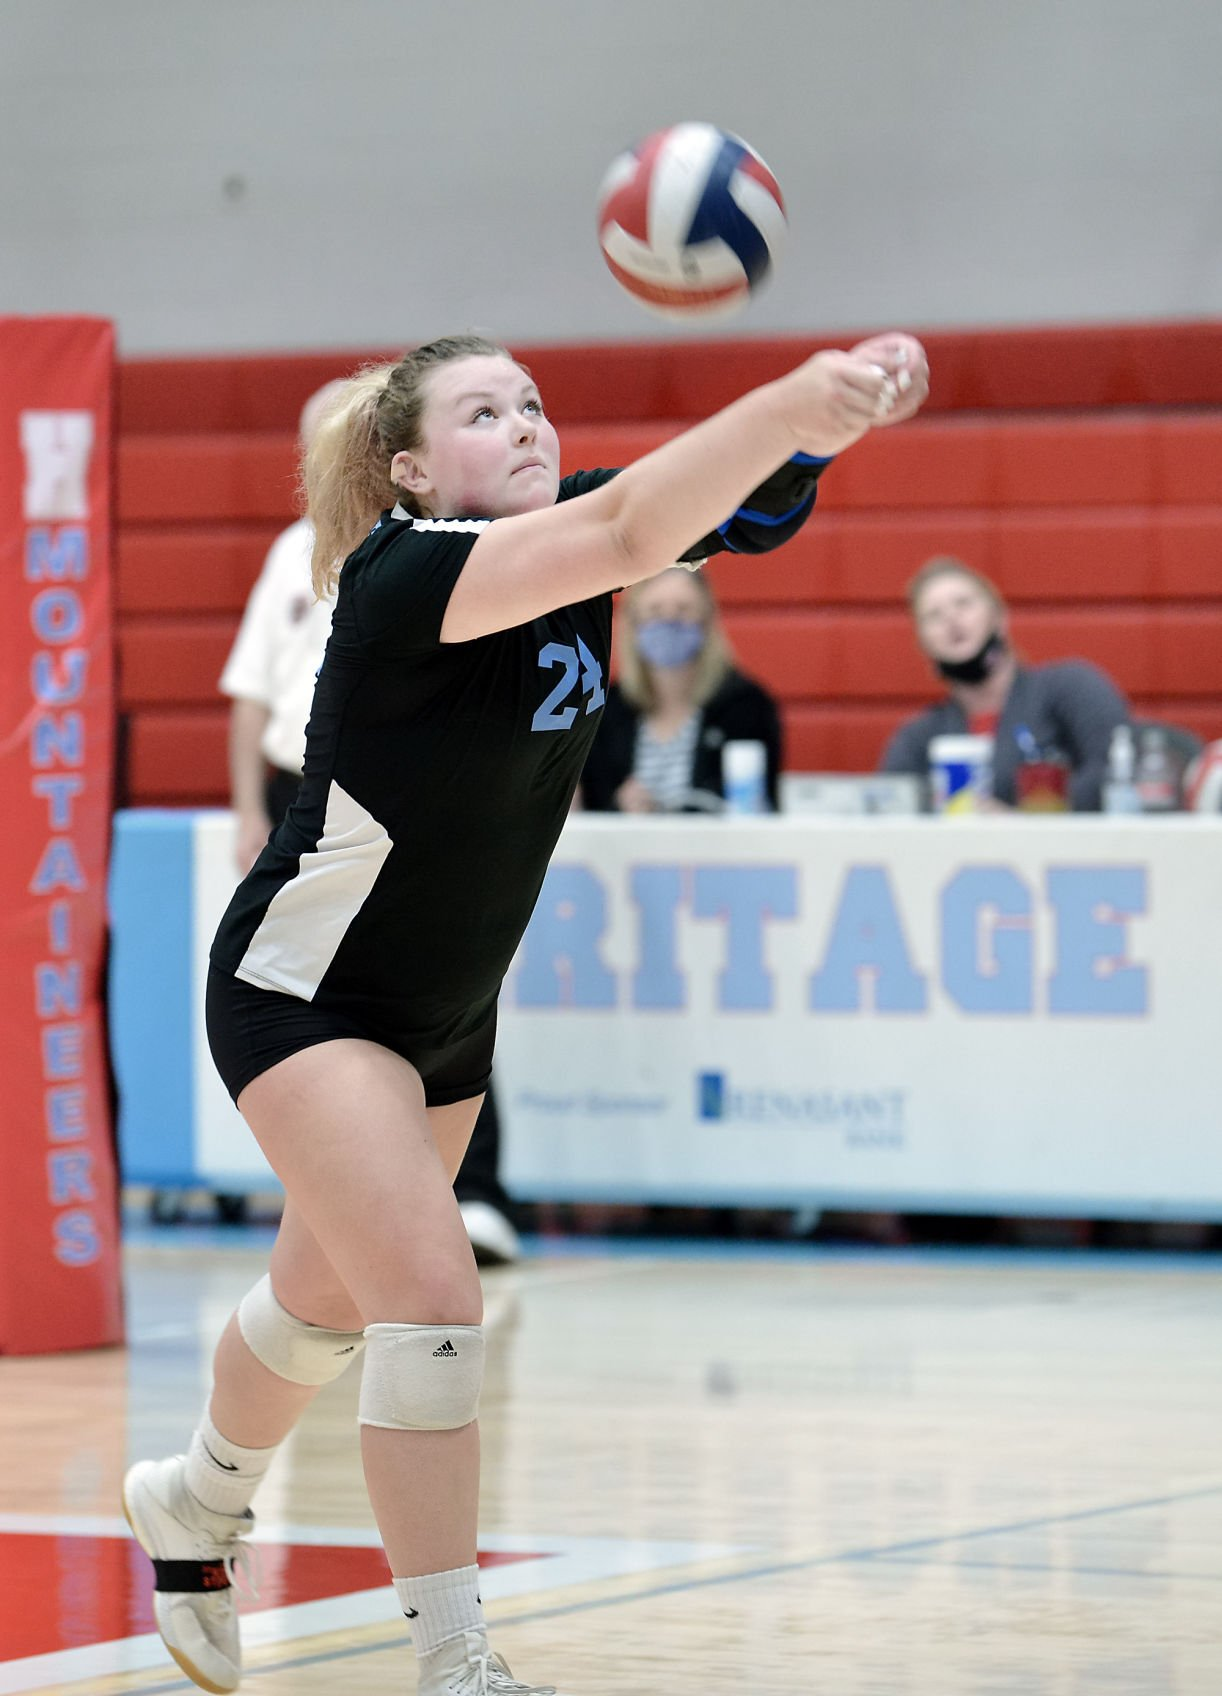 VOLLEYBALL: Heritage's Haley Jenkins vs HVA